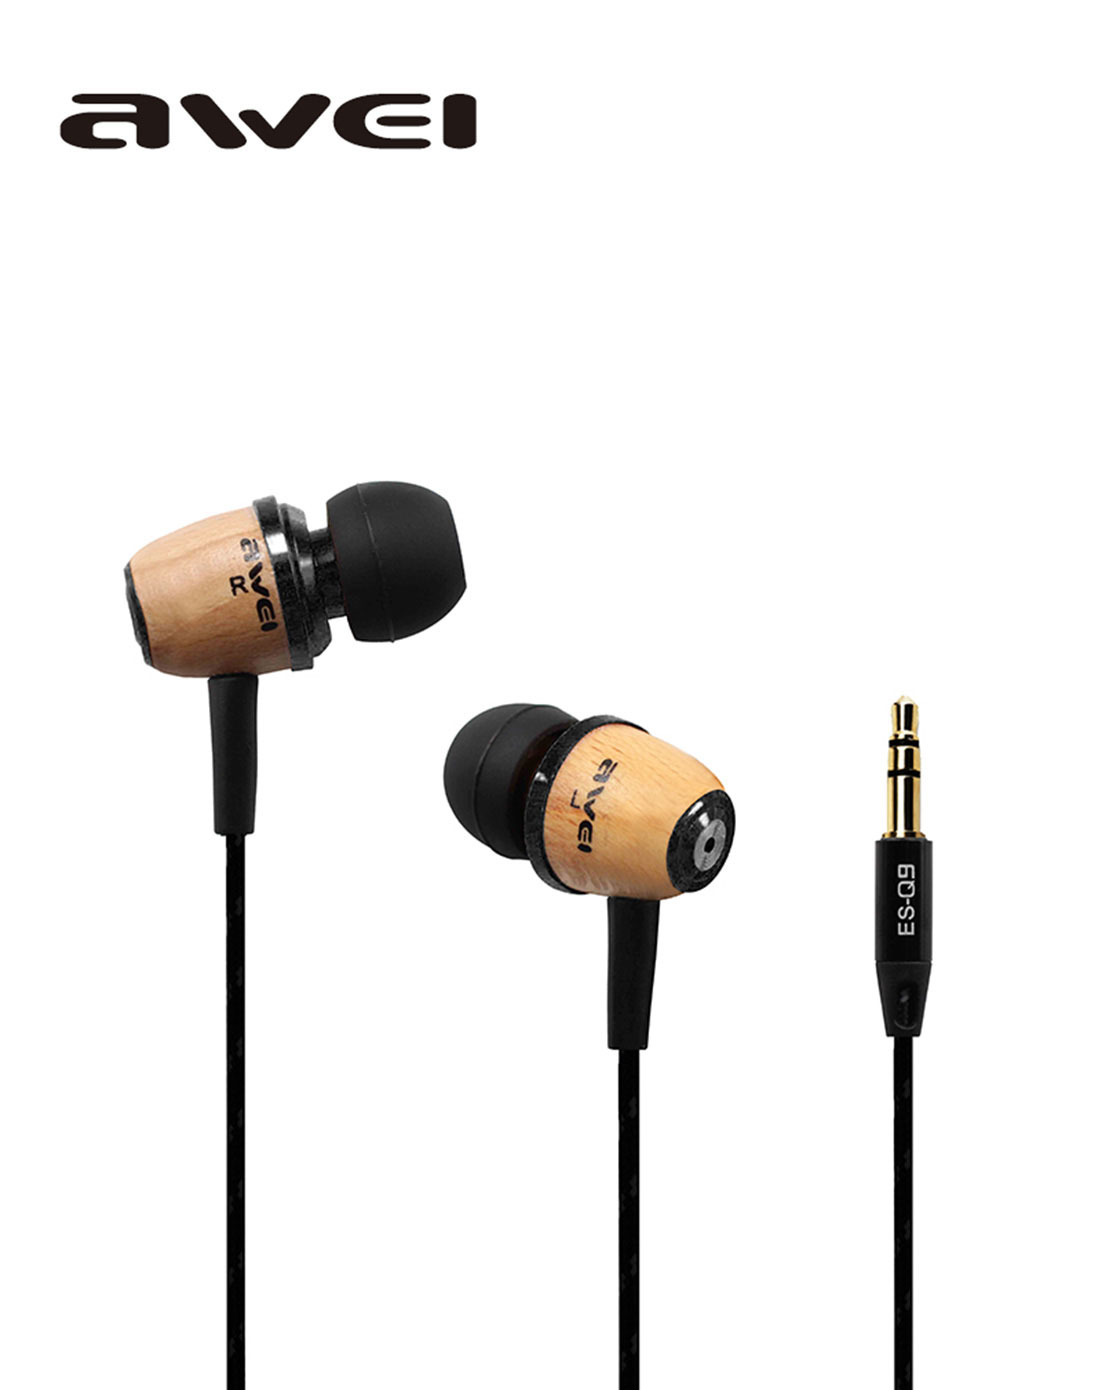 AB19310 Q9 Wooden Universal in-Ear Earphones Headset Super Bass 3.5mm Jack Headphone for MP3/MP4/Smart Phone<br><br>Aliexpress